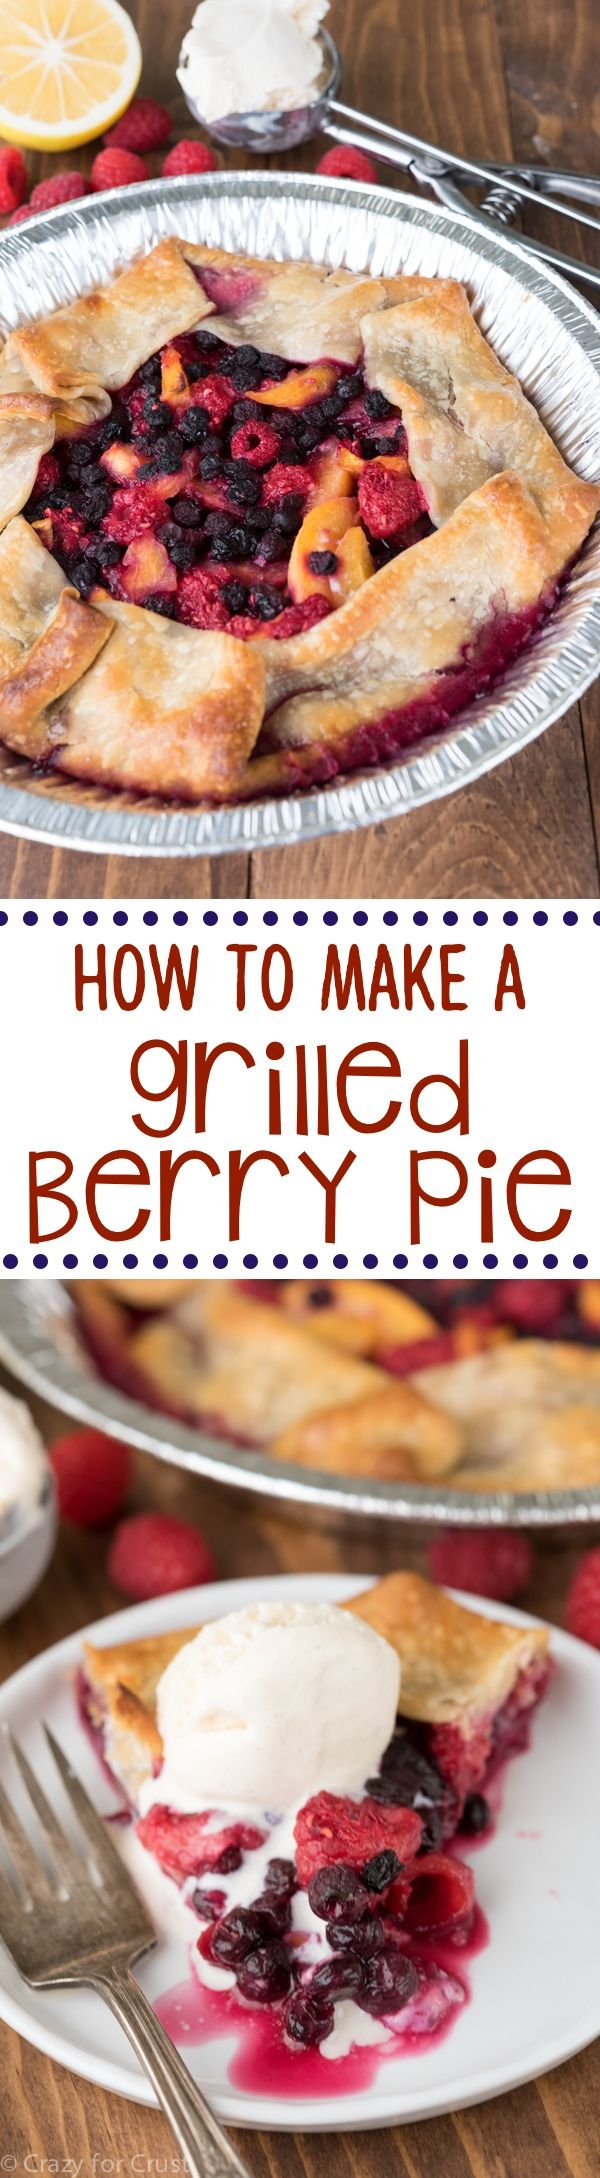 How to Grill A Pie Tutorial! Make this grilled berry peach pie on the BBQ, no oven needed! This easy recipe is perfect for summer.